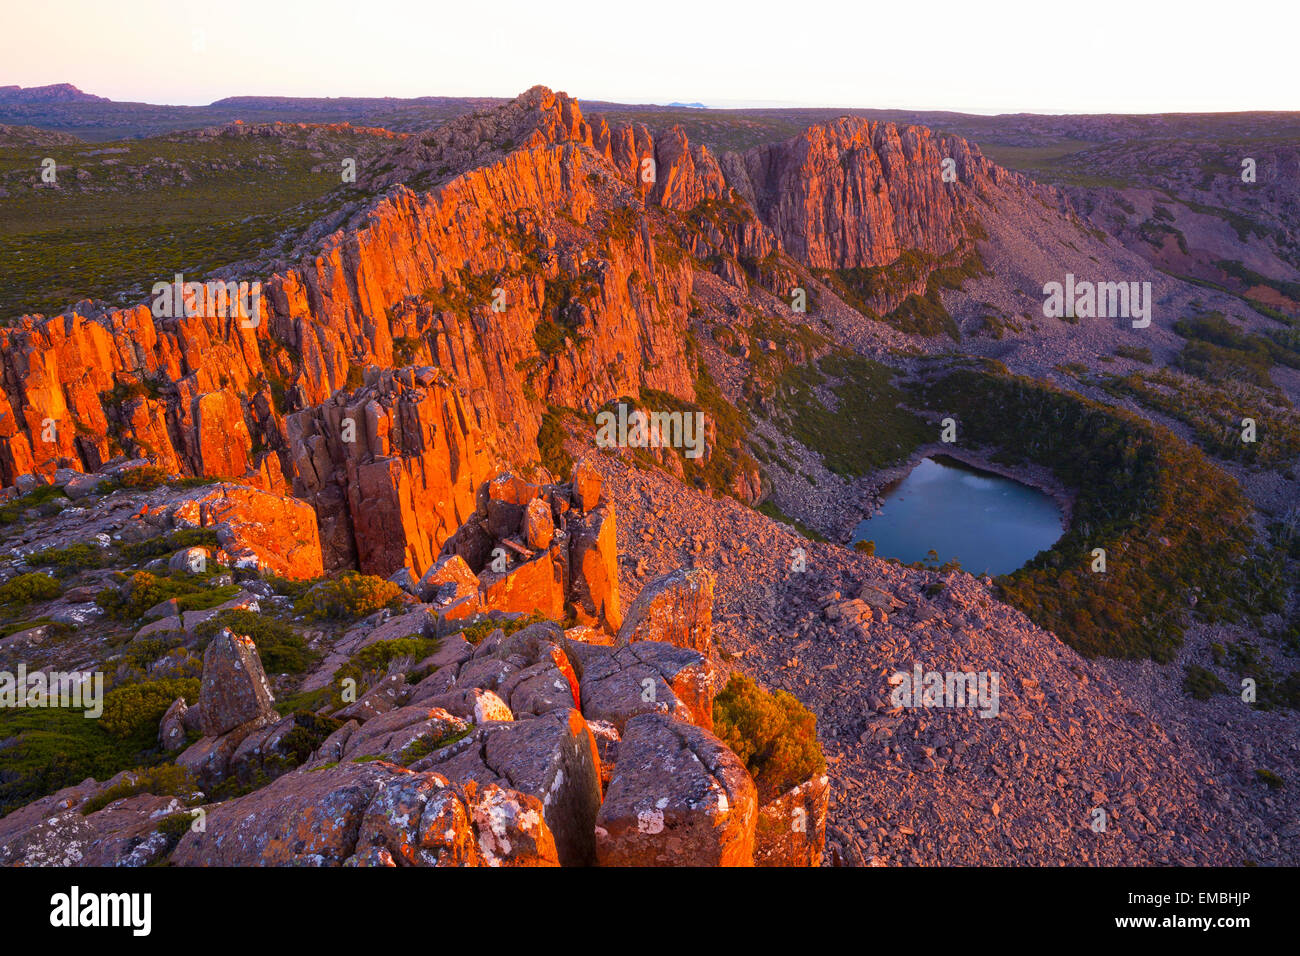 Tranquil Tarn from above - Ben Lomond National Park - Tasmania - Australia Stock Photo